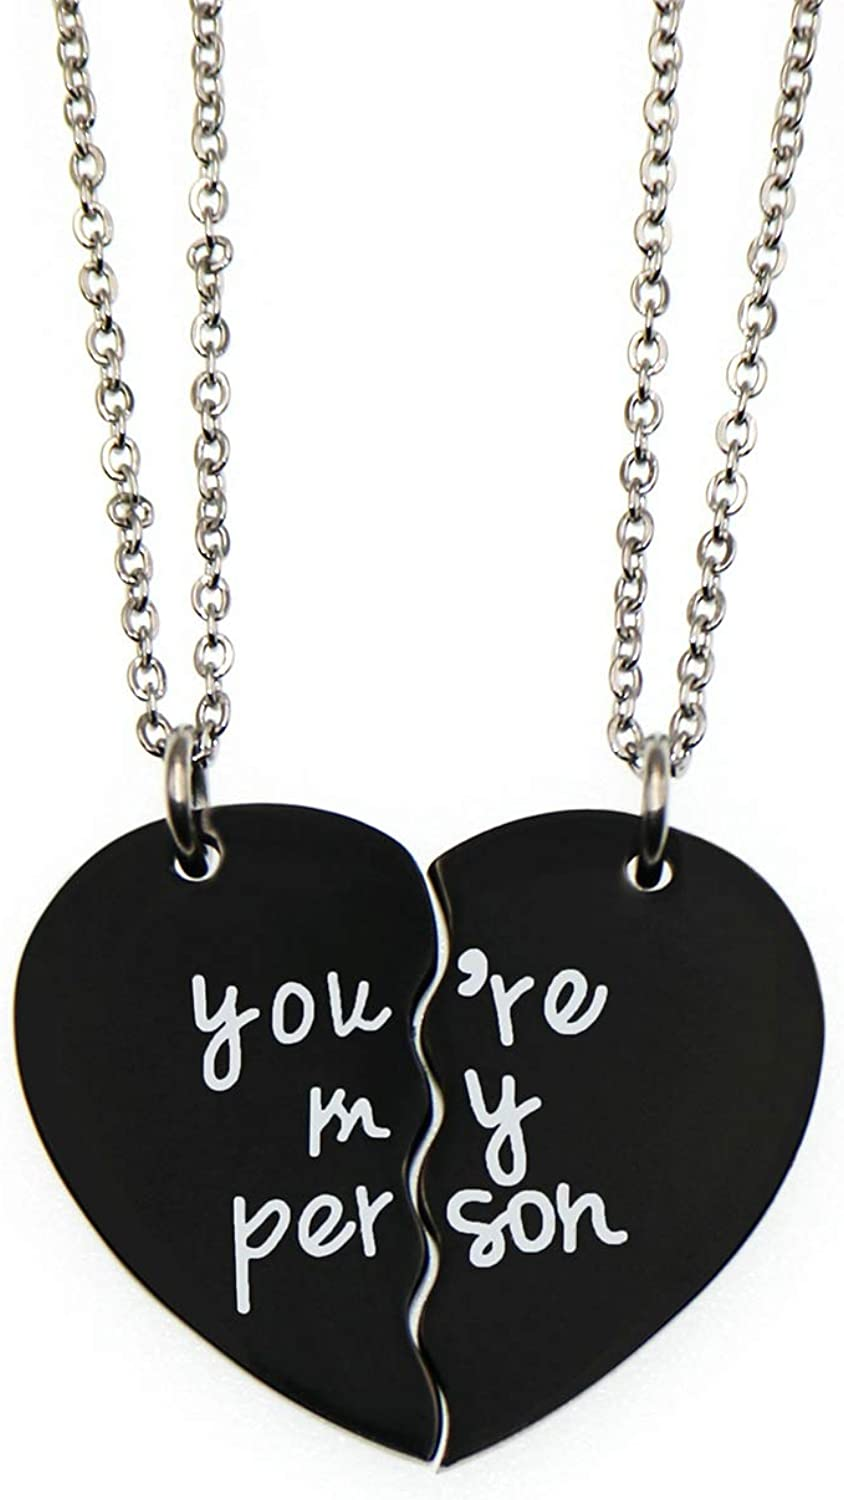 Choice of Metal You/'re My Person Heart Necklace Gift for Wife Girlfriend Best Friend Love Pendant Jewelry